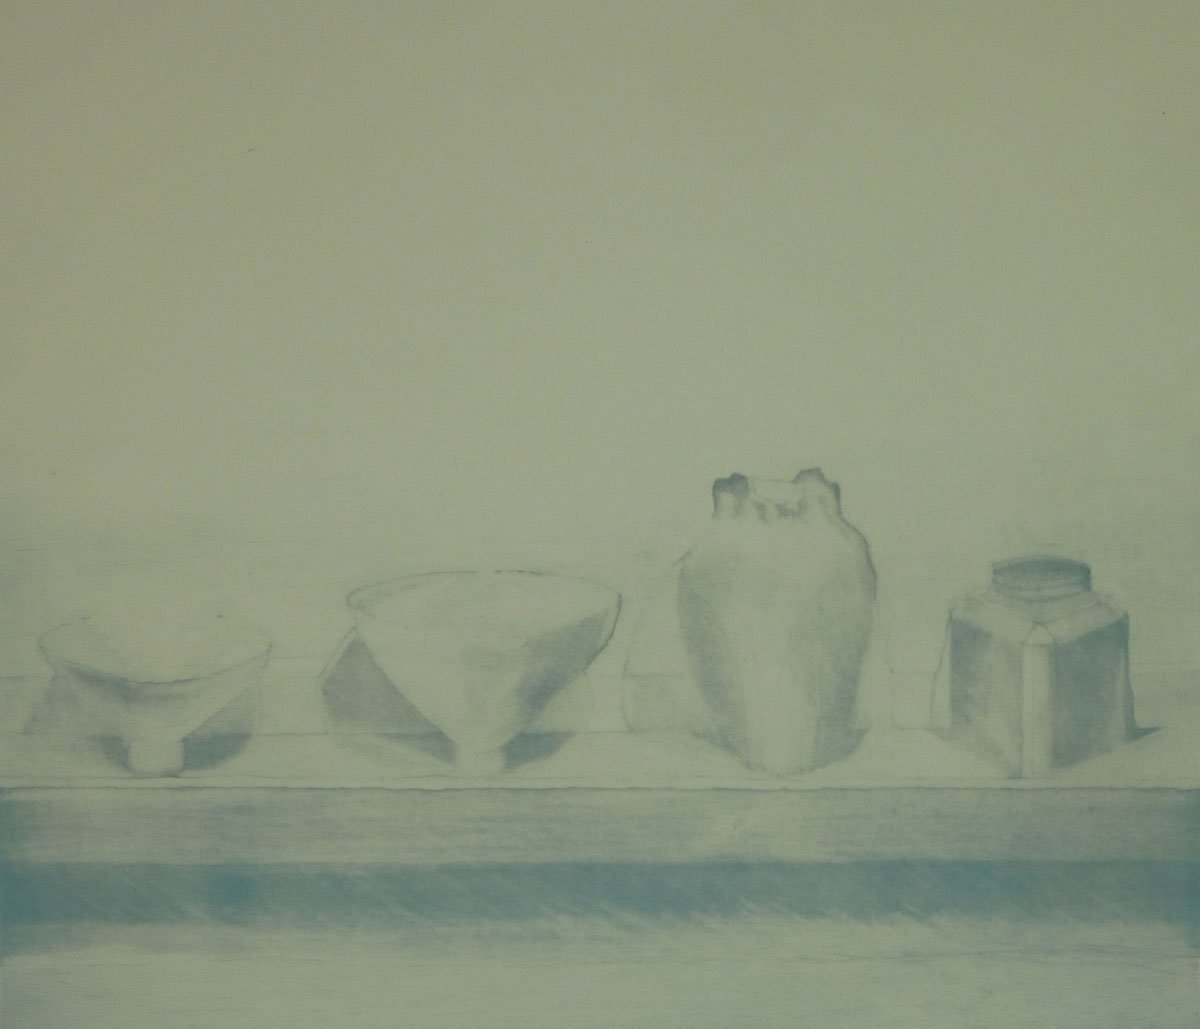 Print-25-Still-Life-(4-objects-on-shelf)-1972